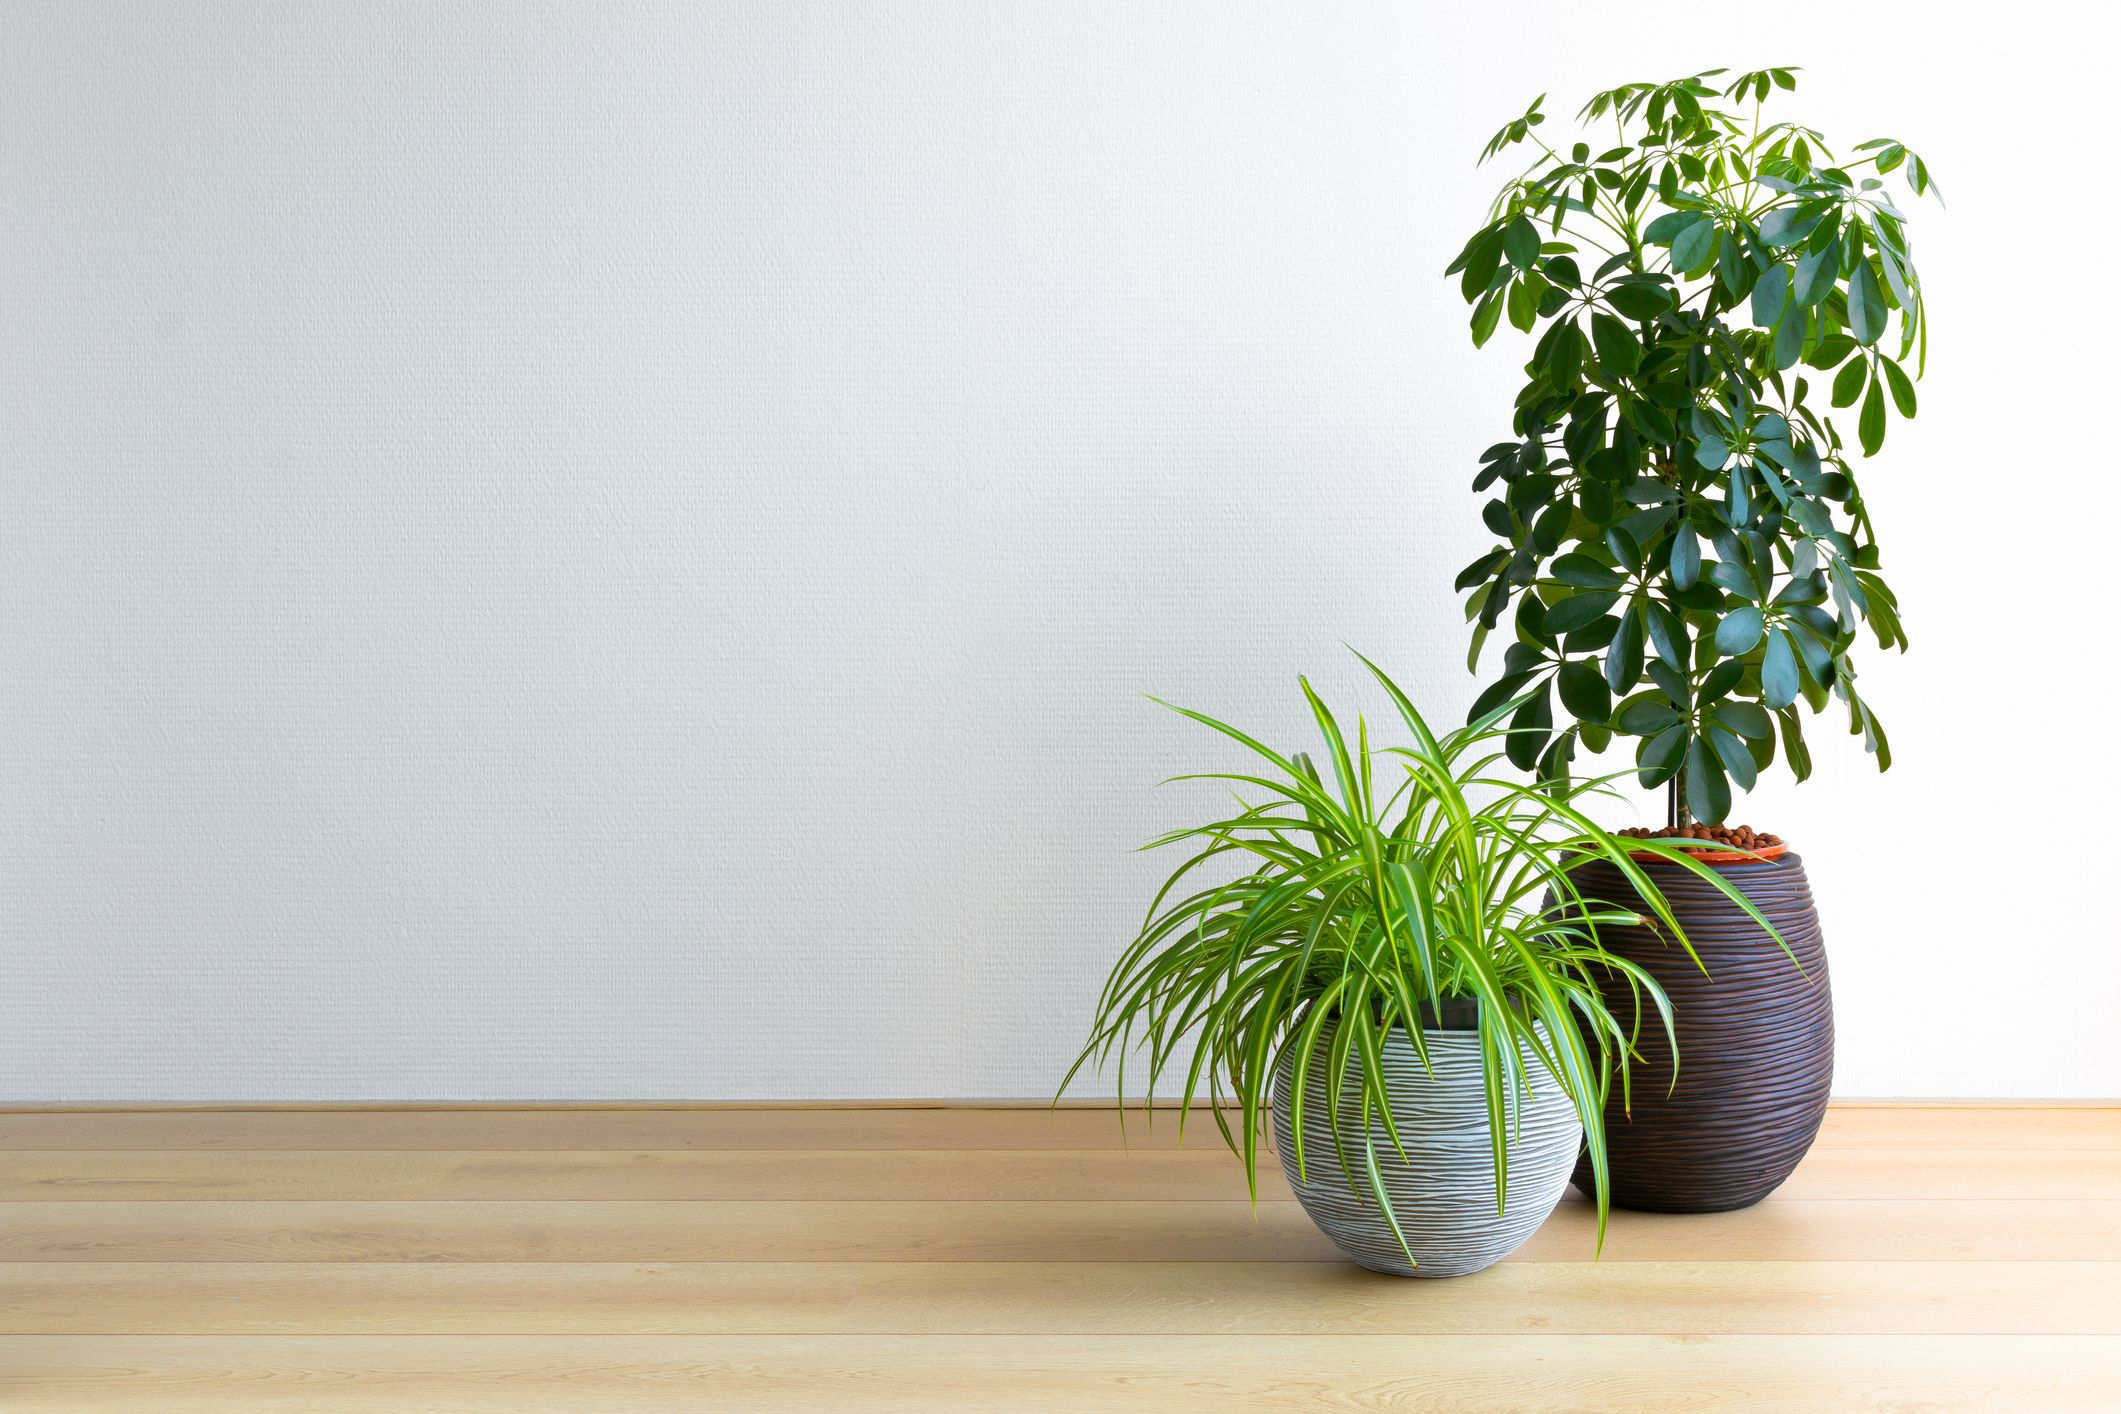 Houseplants do not clean the air in our homes, new study reveals